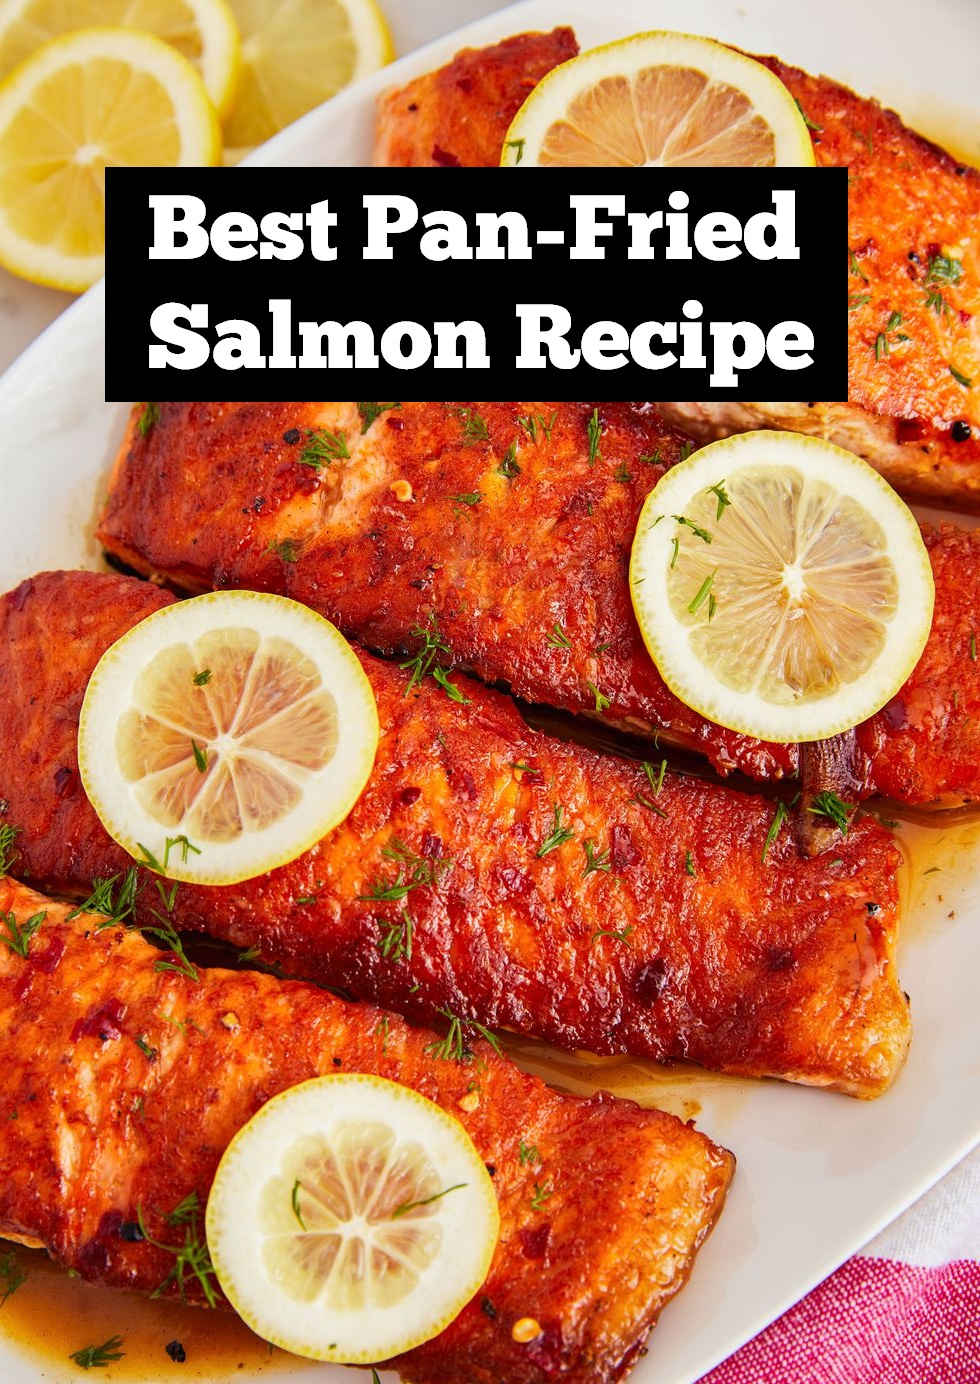 Best Pan-Fried Salmon Recipe | Salmon Recipe | Seafood Recipe | Easy Dinner Recipe | Easy Meals Recipe #Dinner #dinnerrecipe #salmon #seafood #panfried #salmonrecipe #easydinnerrecipe #easymealsrecipe #meals #bestdinnerrecipe